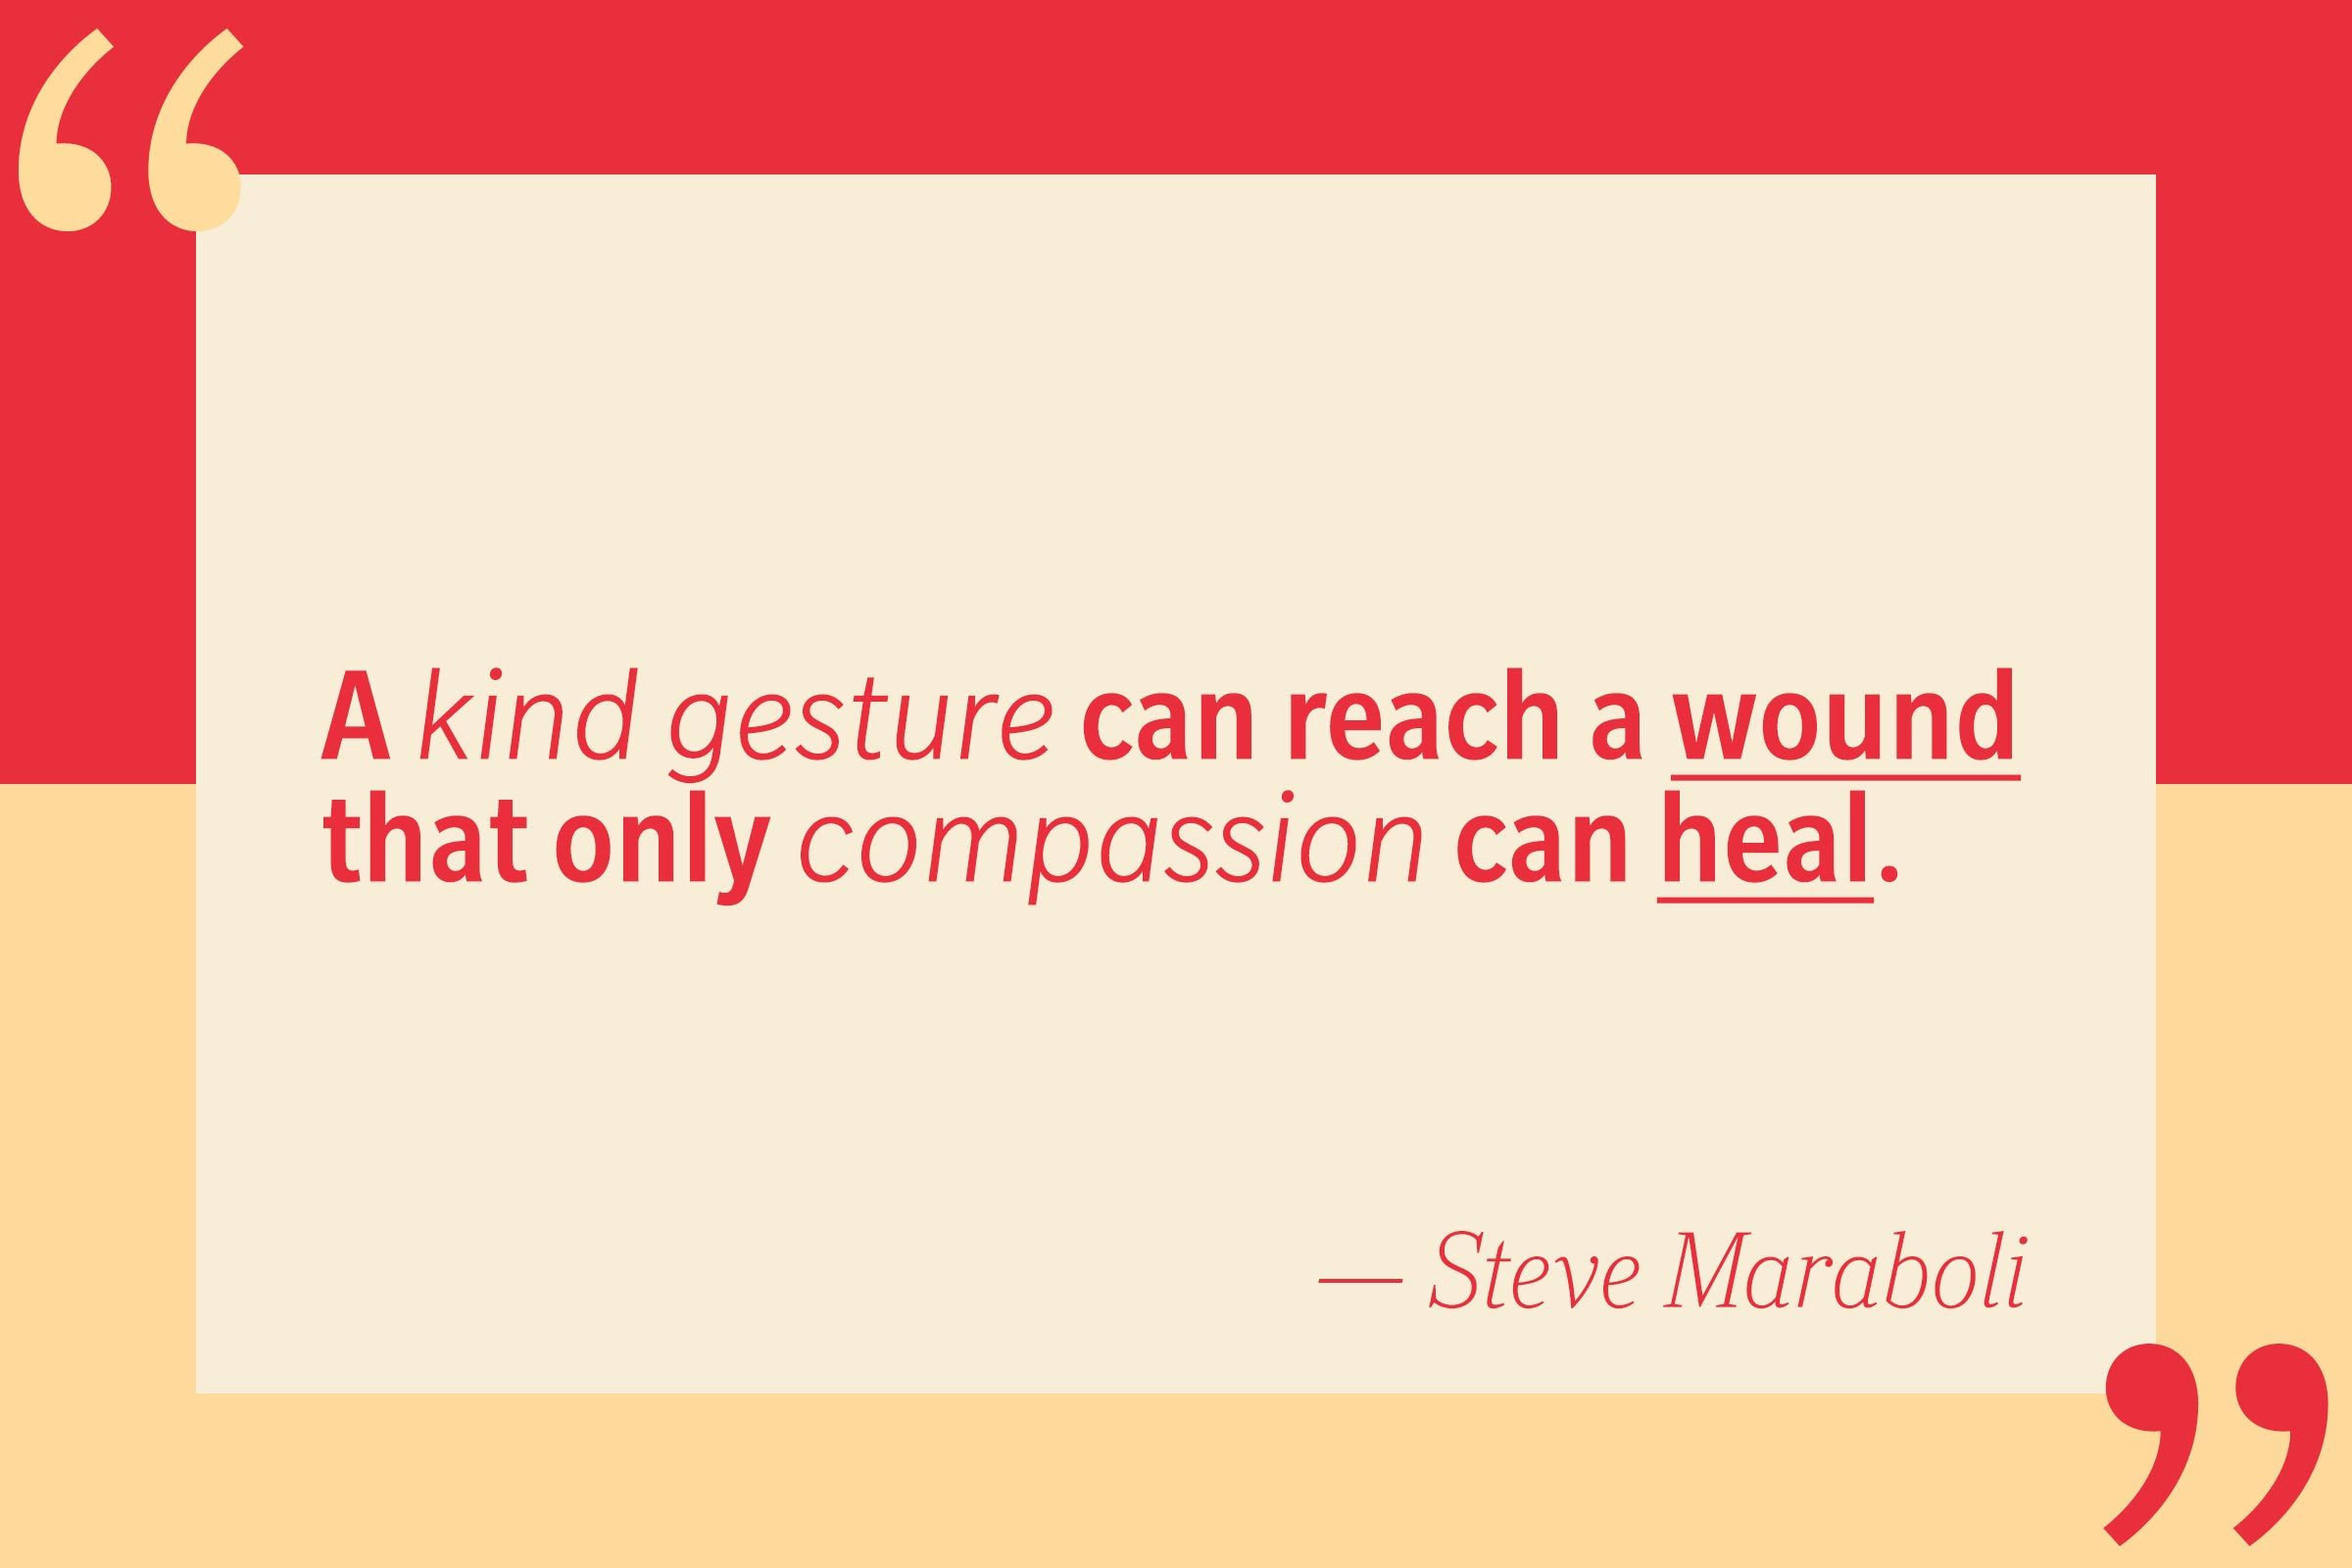 A kind gesture can reach a wound that only compassion can heal. — Steve Maraboli